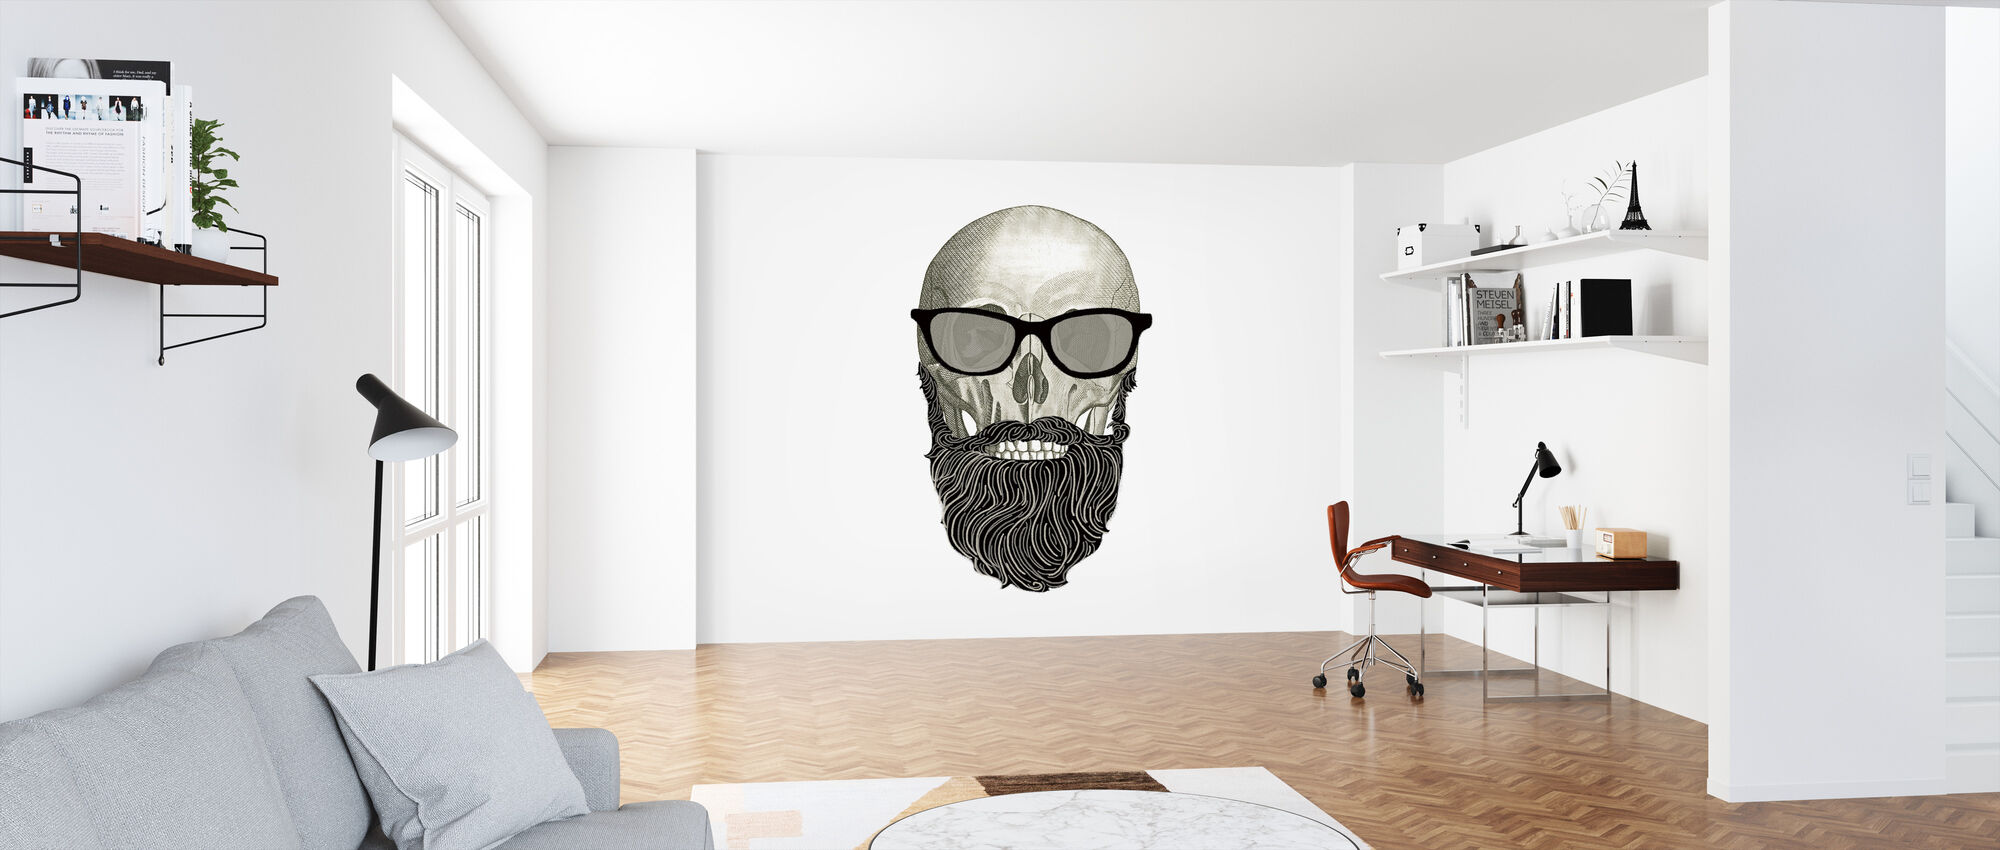 Hipster Skull I - Wallpaper - Office